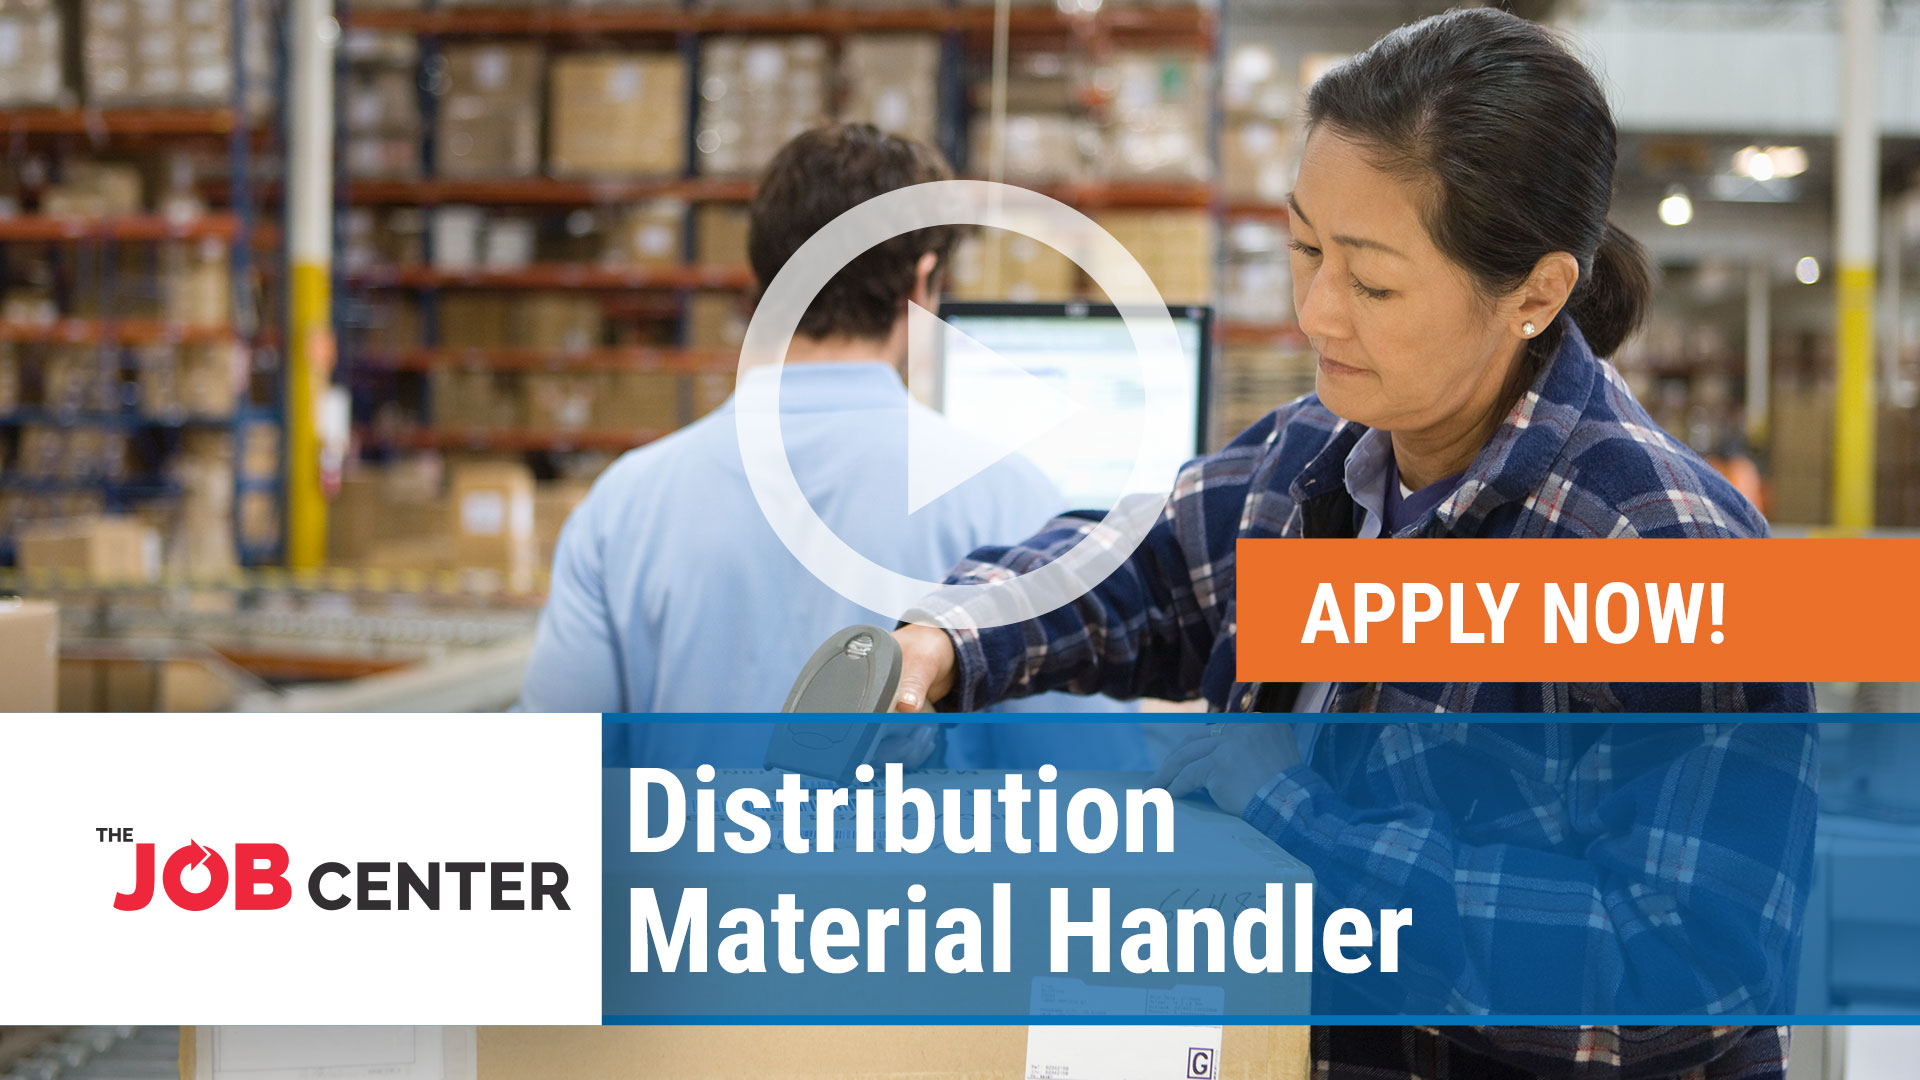 Watch our careers video for available job opening Distribution Material Handler in Multiple, Ohio/ Kentucky/ Indiana/ New Hampshire/ Texas